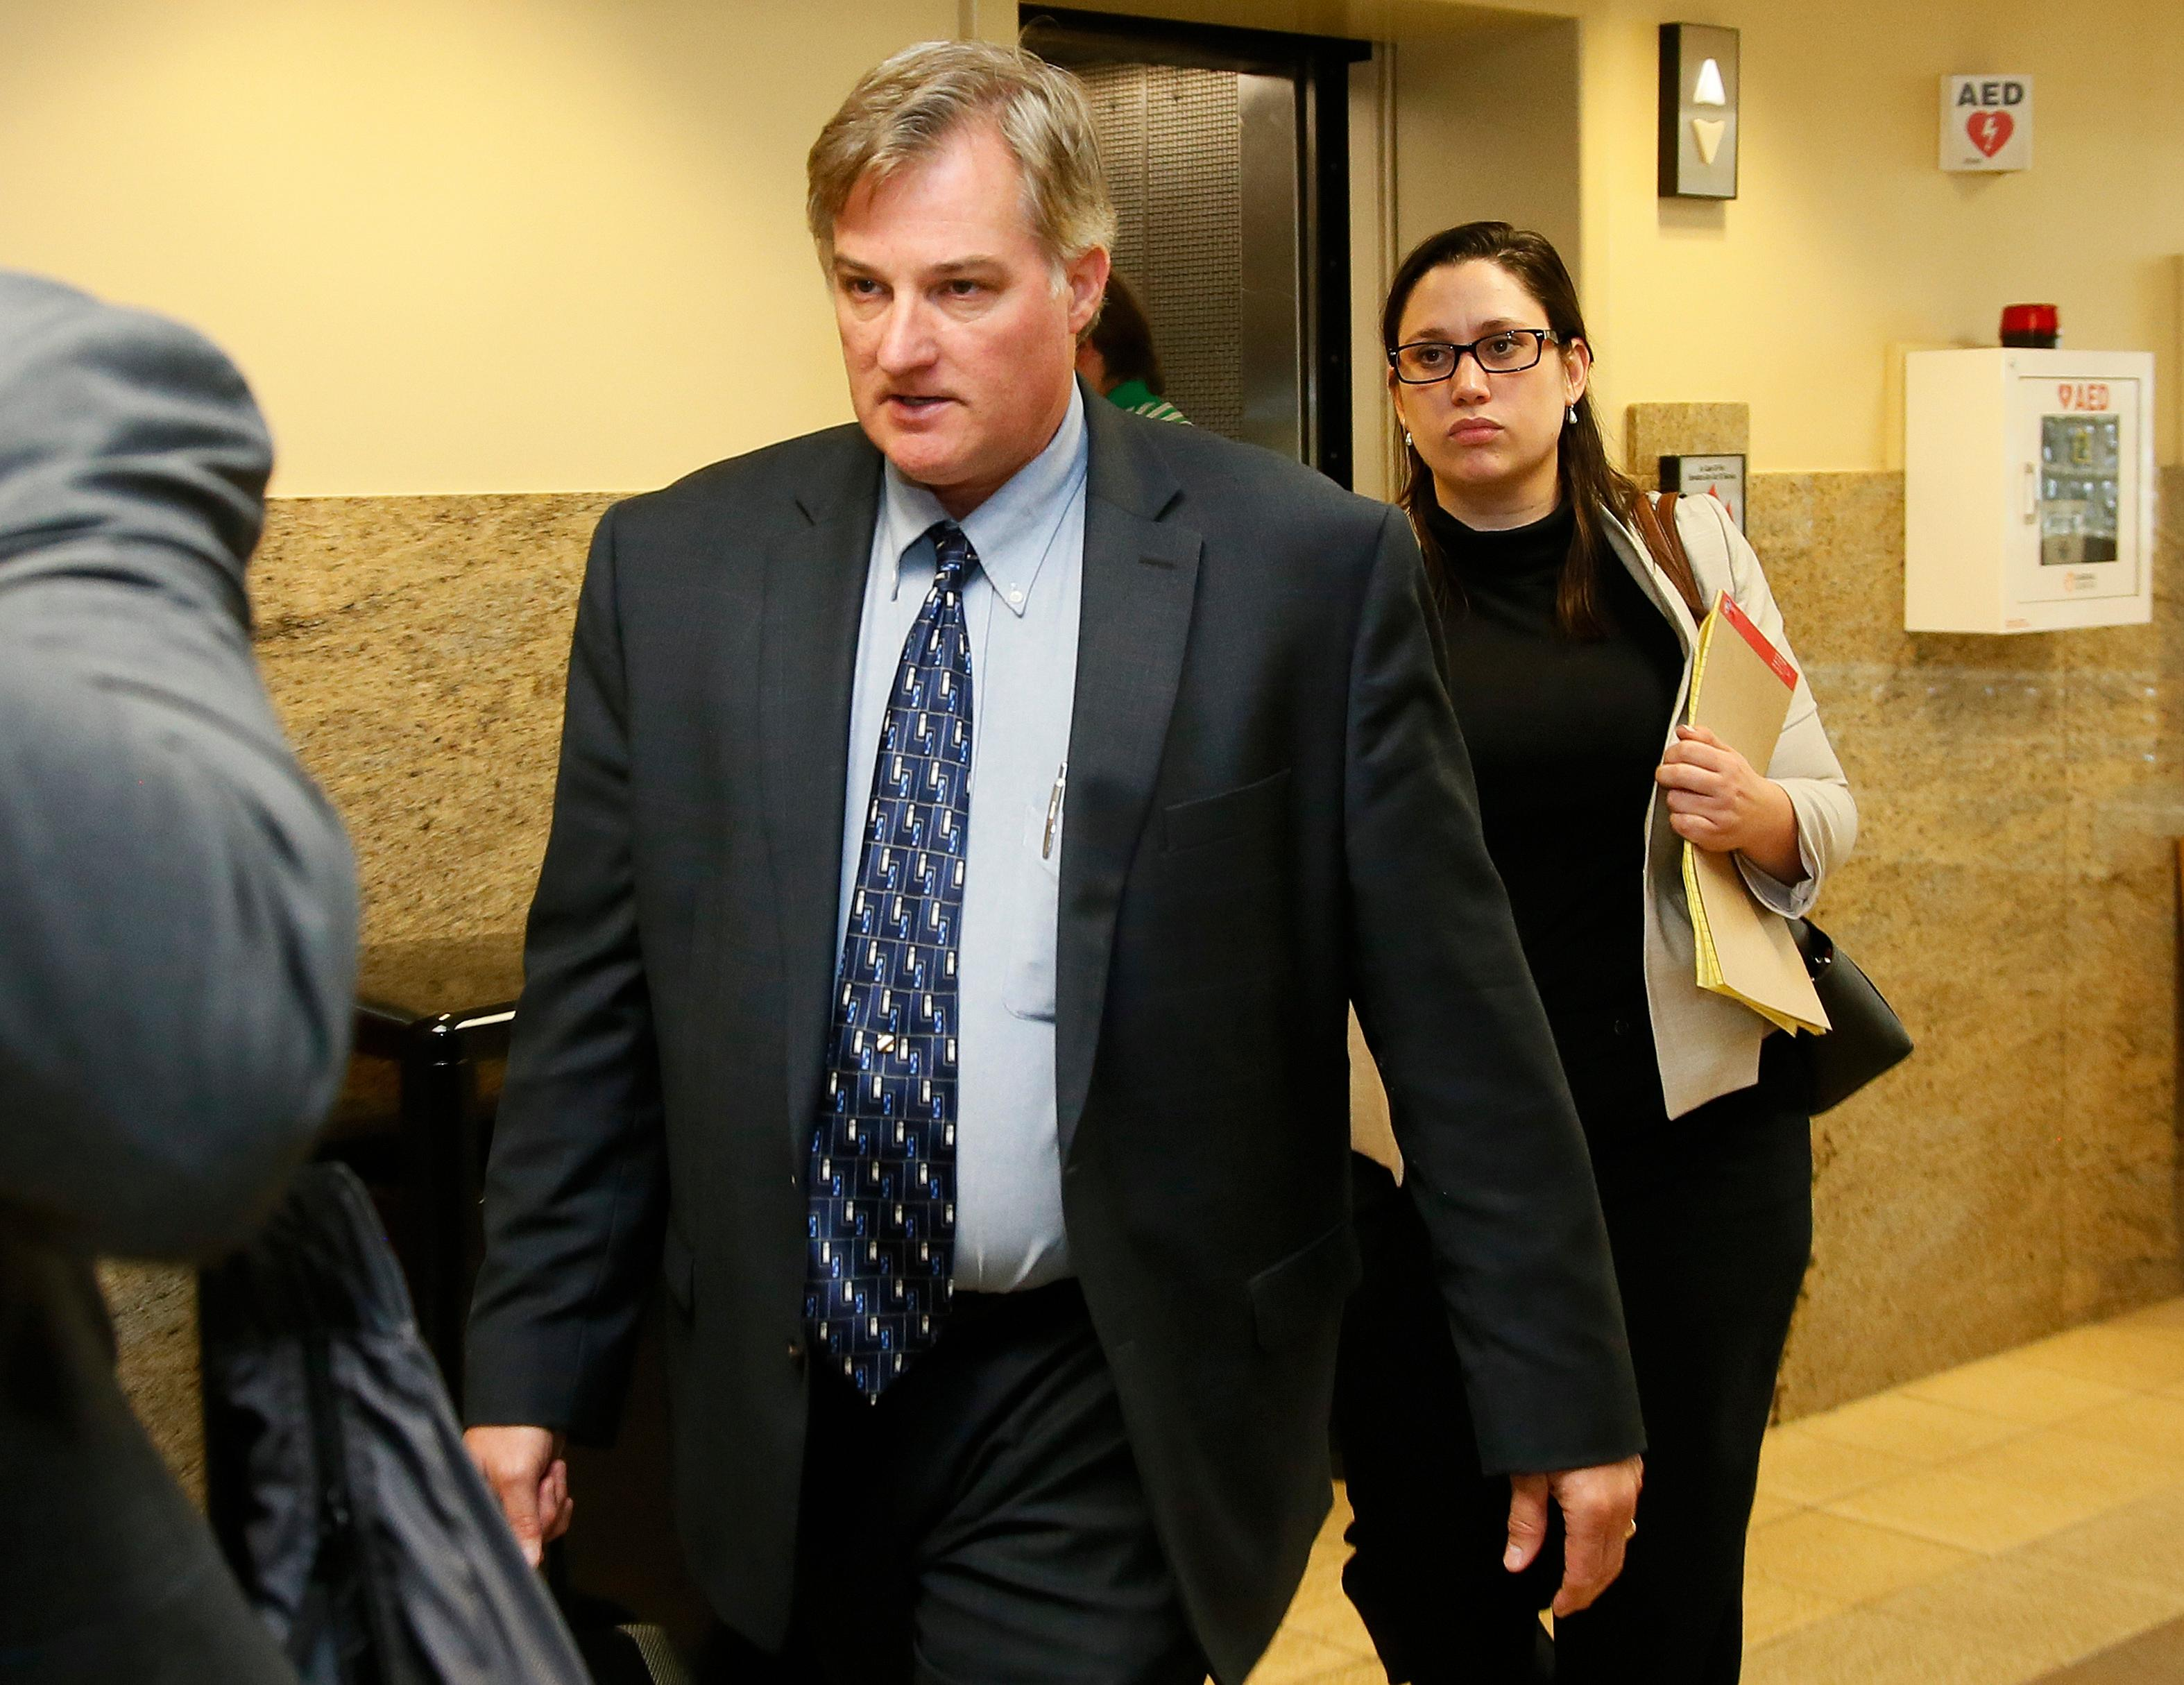 In this Friday, June 30, 2017 photo, Shannon Kepler, left, arrives with his legal team for afternoon testimony in his trial in Tulsa, Okla. Kepler, a former Oklahoma police officer who fatally shot his daughter's black boyfriend in 2014 is on trial for the third time after jurors in previous trials couldn't decide whether or not to convict him of first-degree murder. (AP Photo/Sue Ogrocki)